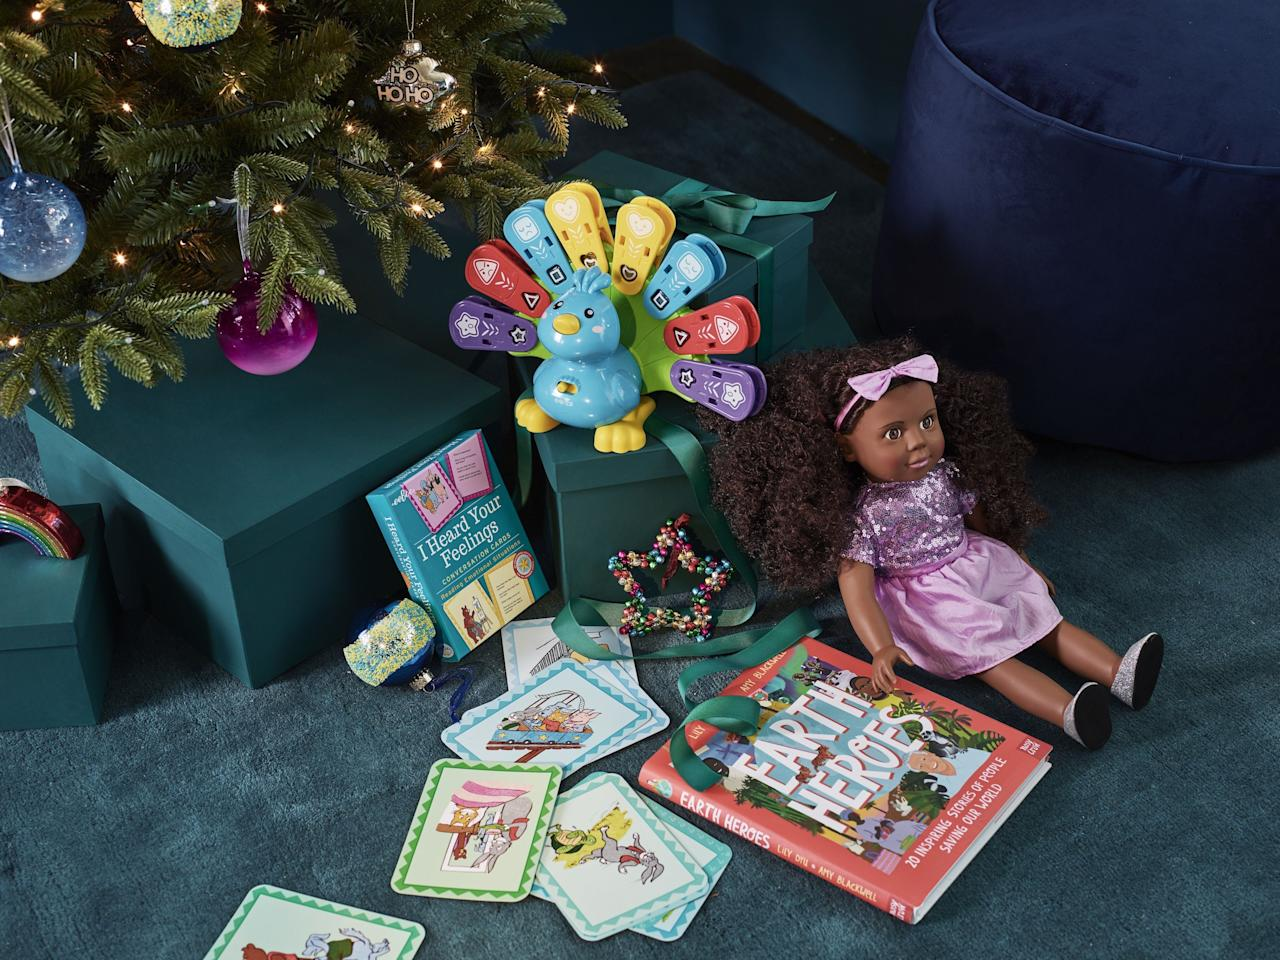 """<p><strong>John Lewis & Partners has just unveiled its top 10 must-have toys for </strong><a href=""""https://www.housebeautiful.com/uk/christmas/"""" style=""""font-weight:bold;"""" target=""""_blank"""">Christmas</a><strong></strong> <strong>2020 — and the key themes for this year are climate change, sustainability and interactive learning. </strong></p><p>'This year is driven by the importance of learning through play and enhancing communication skills through interaction with toys as children have adapted to playing in smaller groups and with siblings,' say the team at John Lewis. </p><p>'We have already seen a 106 per cent increase in sales of electronic toys this year and are introducing Botley 2.0, Brio Smart Tech Sound and VTech Feathers and Feelings Peacock in time for Christmas. All are expected to be among sought-after gifts this season as parents look for different ways to keep children entertained whilst also learning new skills and tools.'</p><p>Shop the must-have toys at <a href=""""https://go.redirectingat.com?id=127X1599956&url=https%3A%2F%2Fwww.johnlewis.com%2F&sref=https%3A%2F%2Fwww.housebeautiful.com%2Fuk%2Flifestyle%2Fshopping%2Fg33979702%2Fjohn-lewis-christmas-toys%2F"""" target=""""_blank"""">John Lewis</a> and check out the most popular predictions here...</p>"""